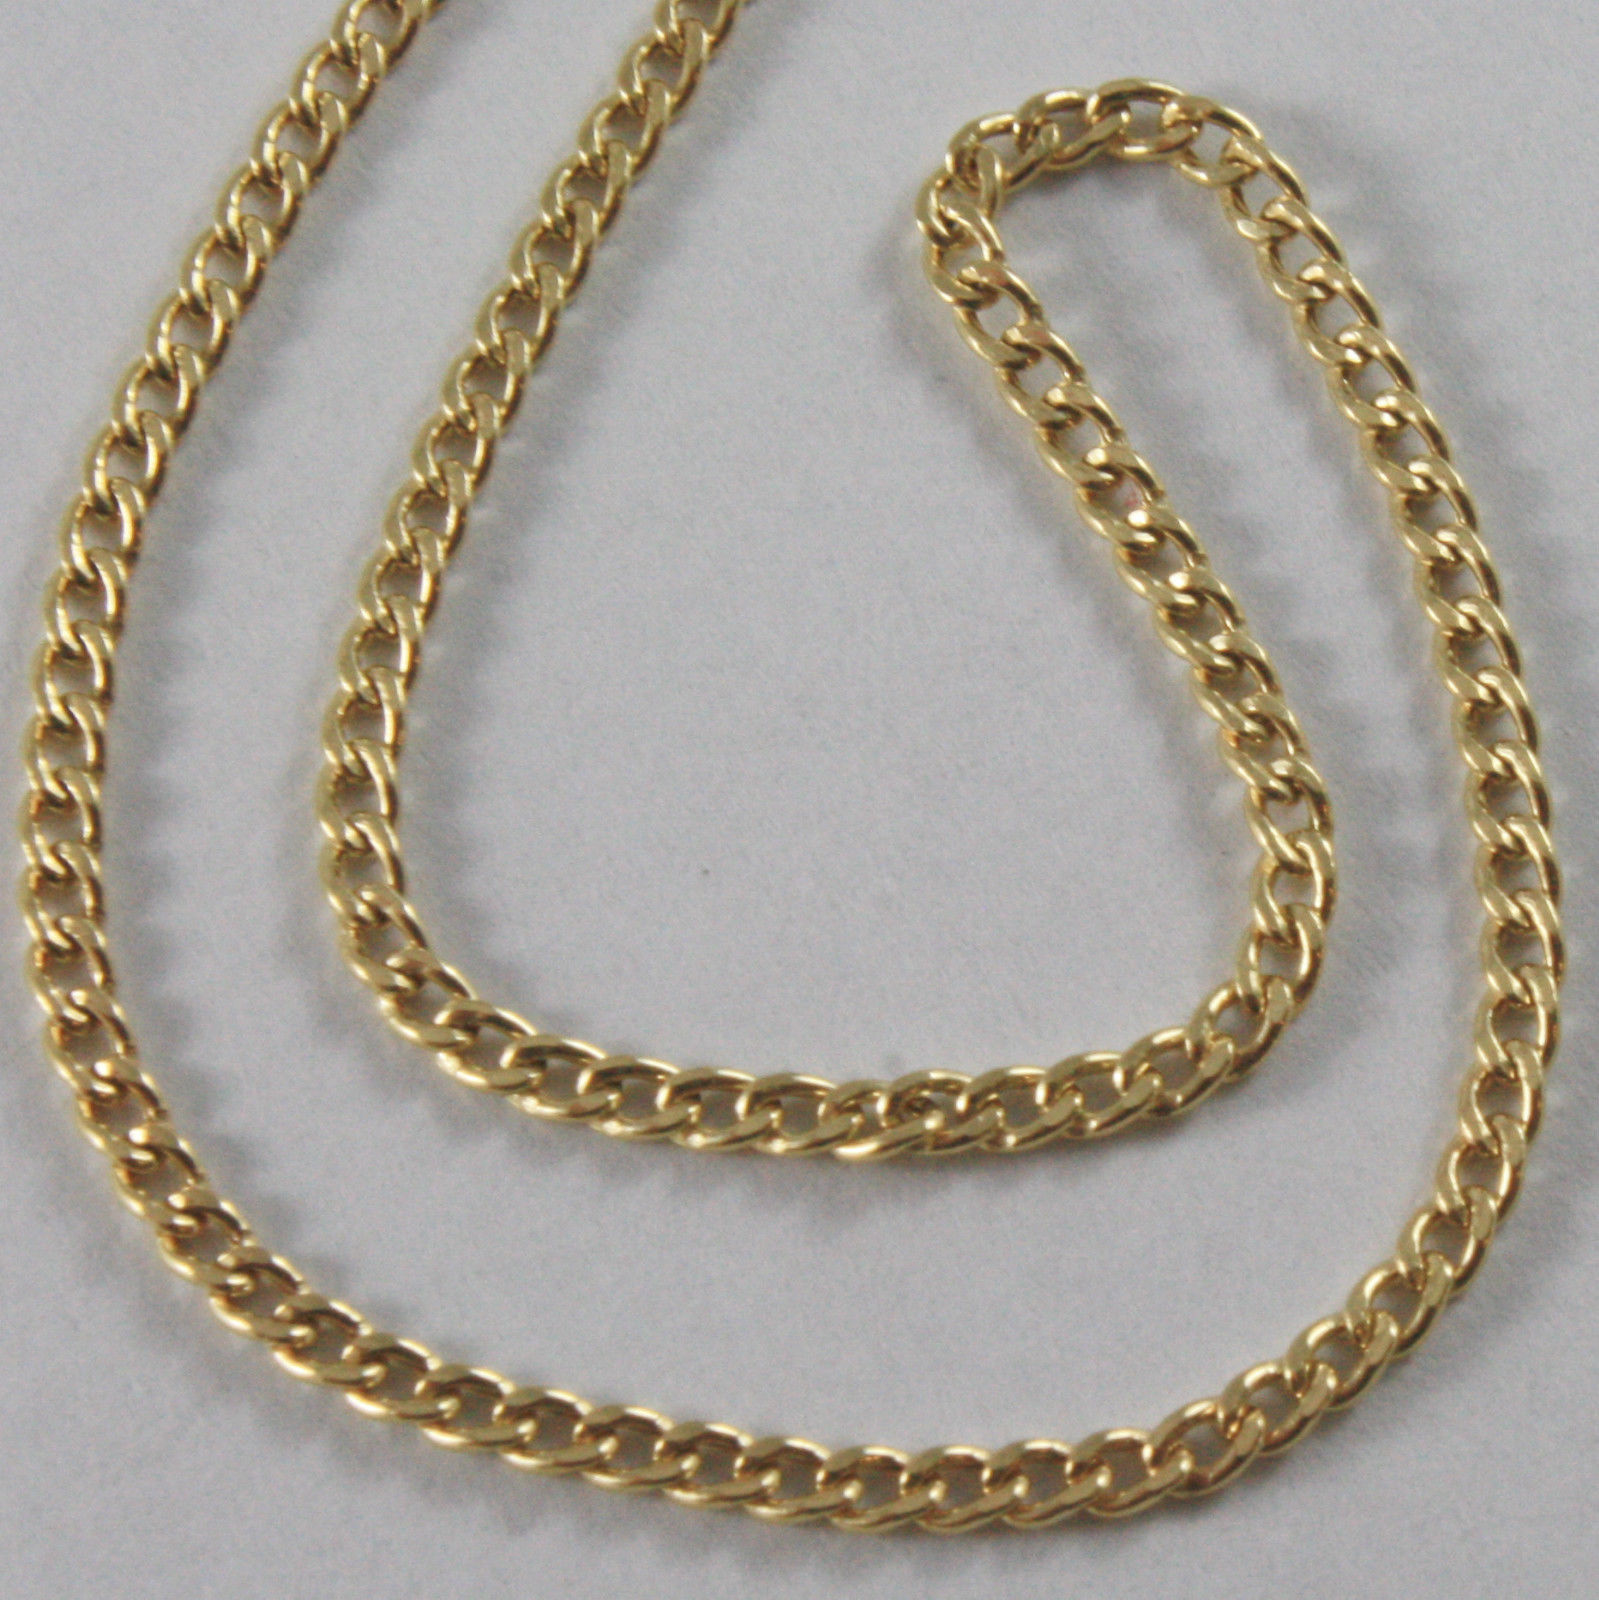 18K YELLOW GOLD CHAIN LITTLE GRUMETTE GOURMETTE OVAL LINK NECKLACE MADE IN ITALY